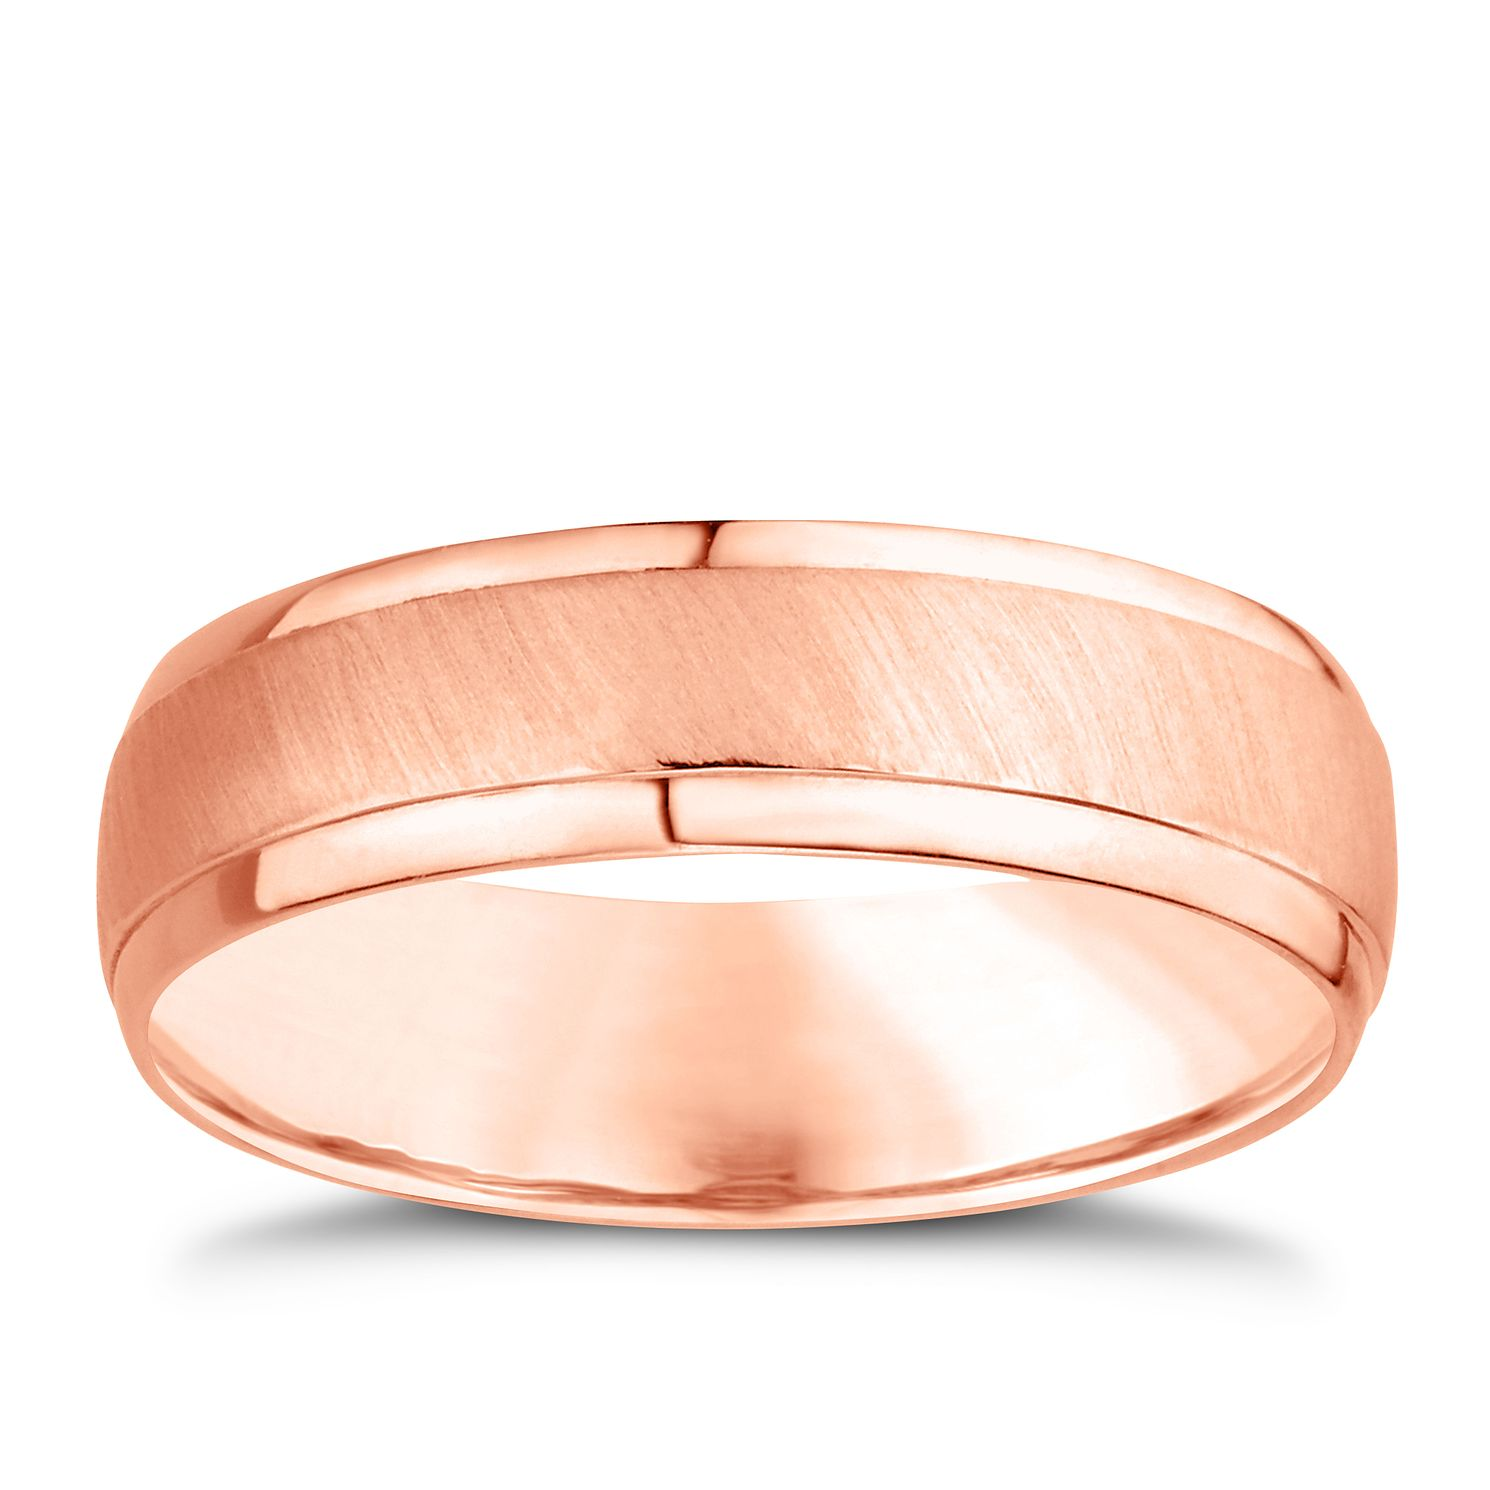 Palladium And 9ct Rose Gold 6mm Matt & Polished Ring - Product number 4550544